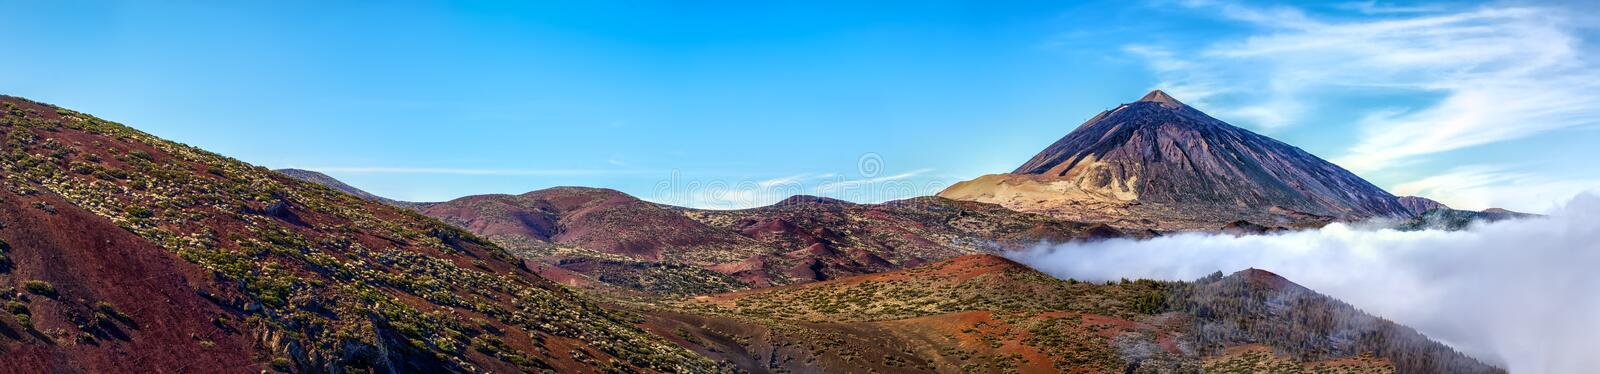 Mt teide. Volcano and clouds panorama royalty free stock photos